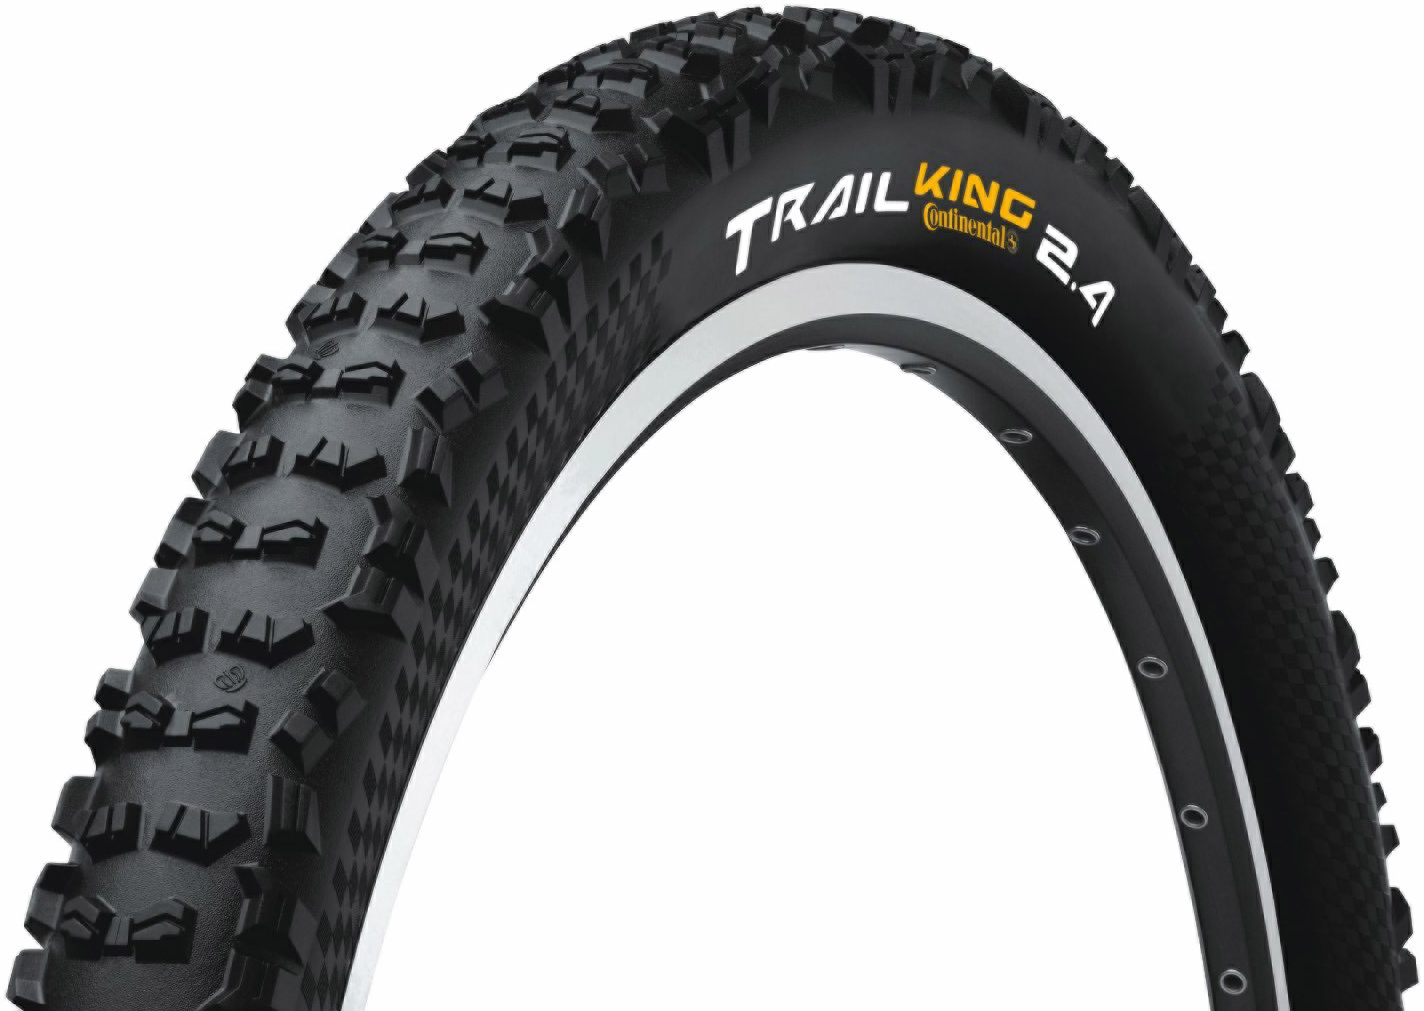 Continental Trail King MTB Tyre | Tyres